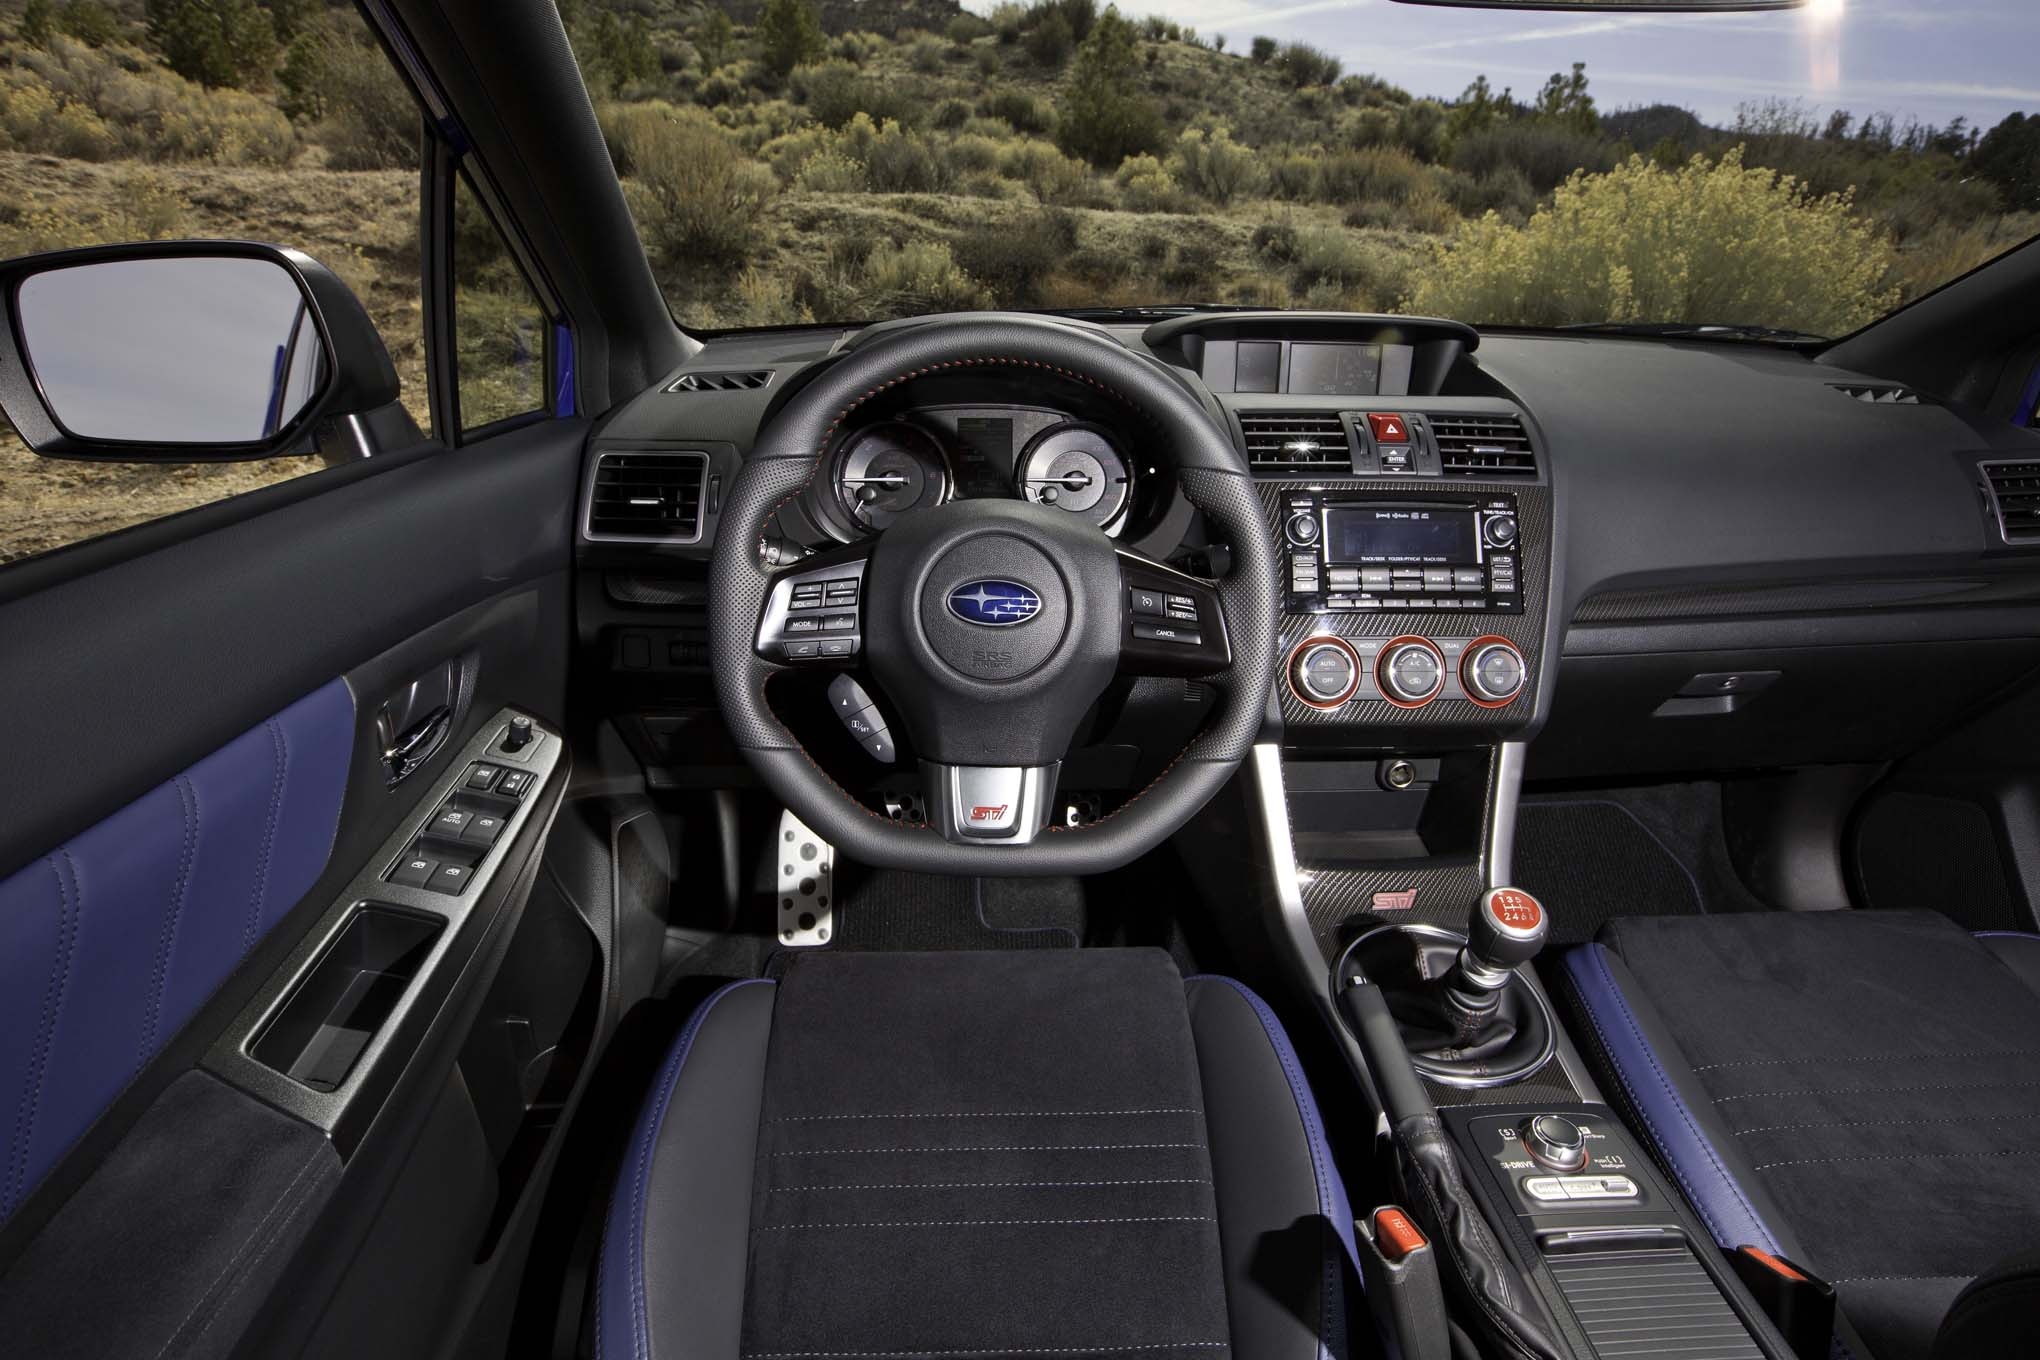 2015 Subaru WRX-STI Dashboard Cockpit Panels